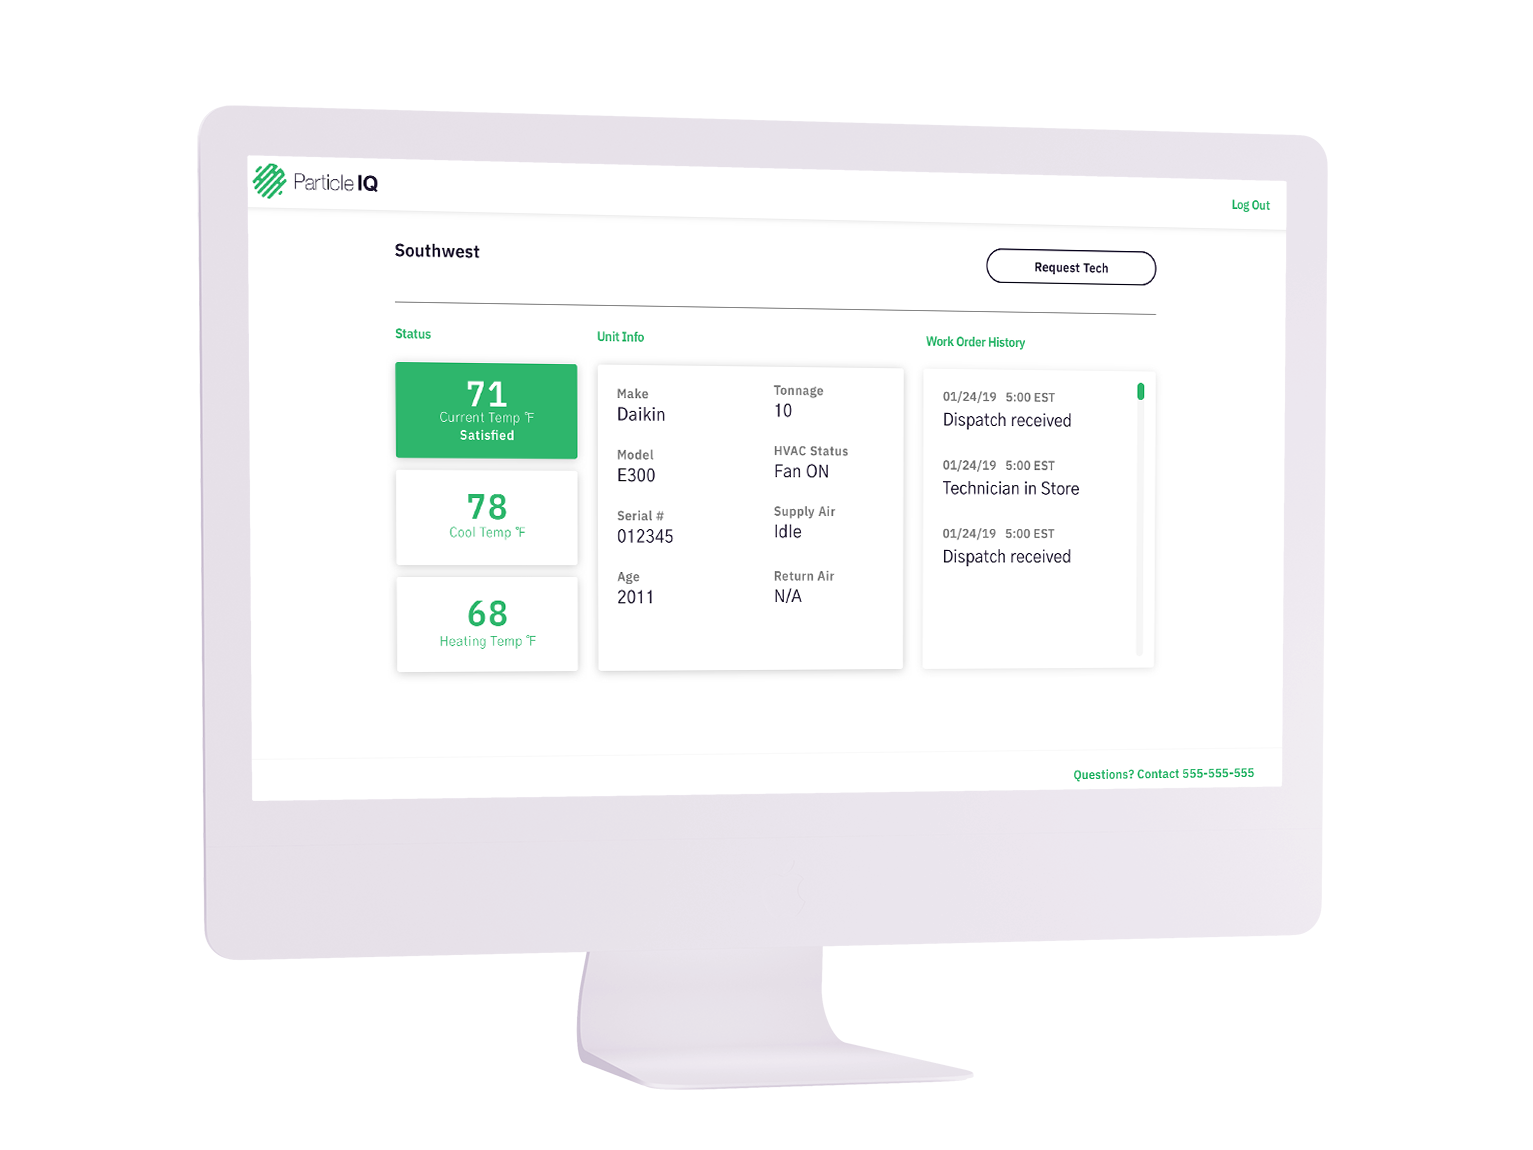 The Particle IQ Solution - Particle IQ is a cloud-enabled HVAC service that allows you to bundle installation, energy management, fault monitoring, maintenance, and reactive repairs into a single, cost-effective monthly service.